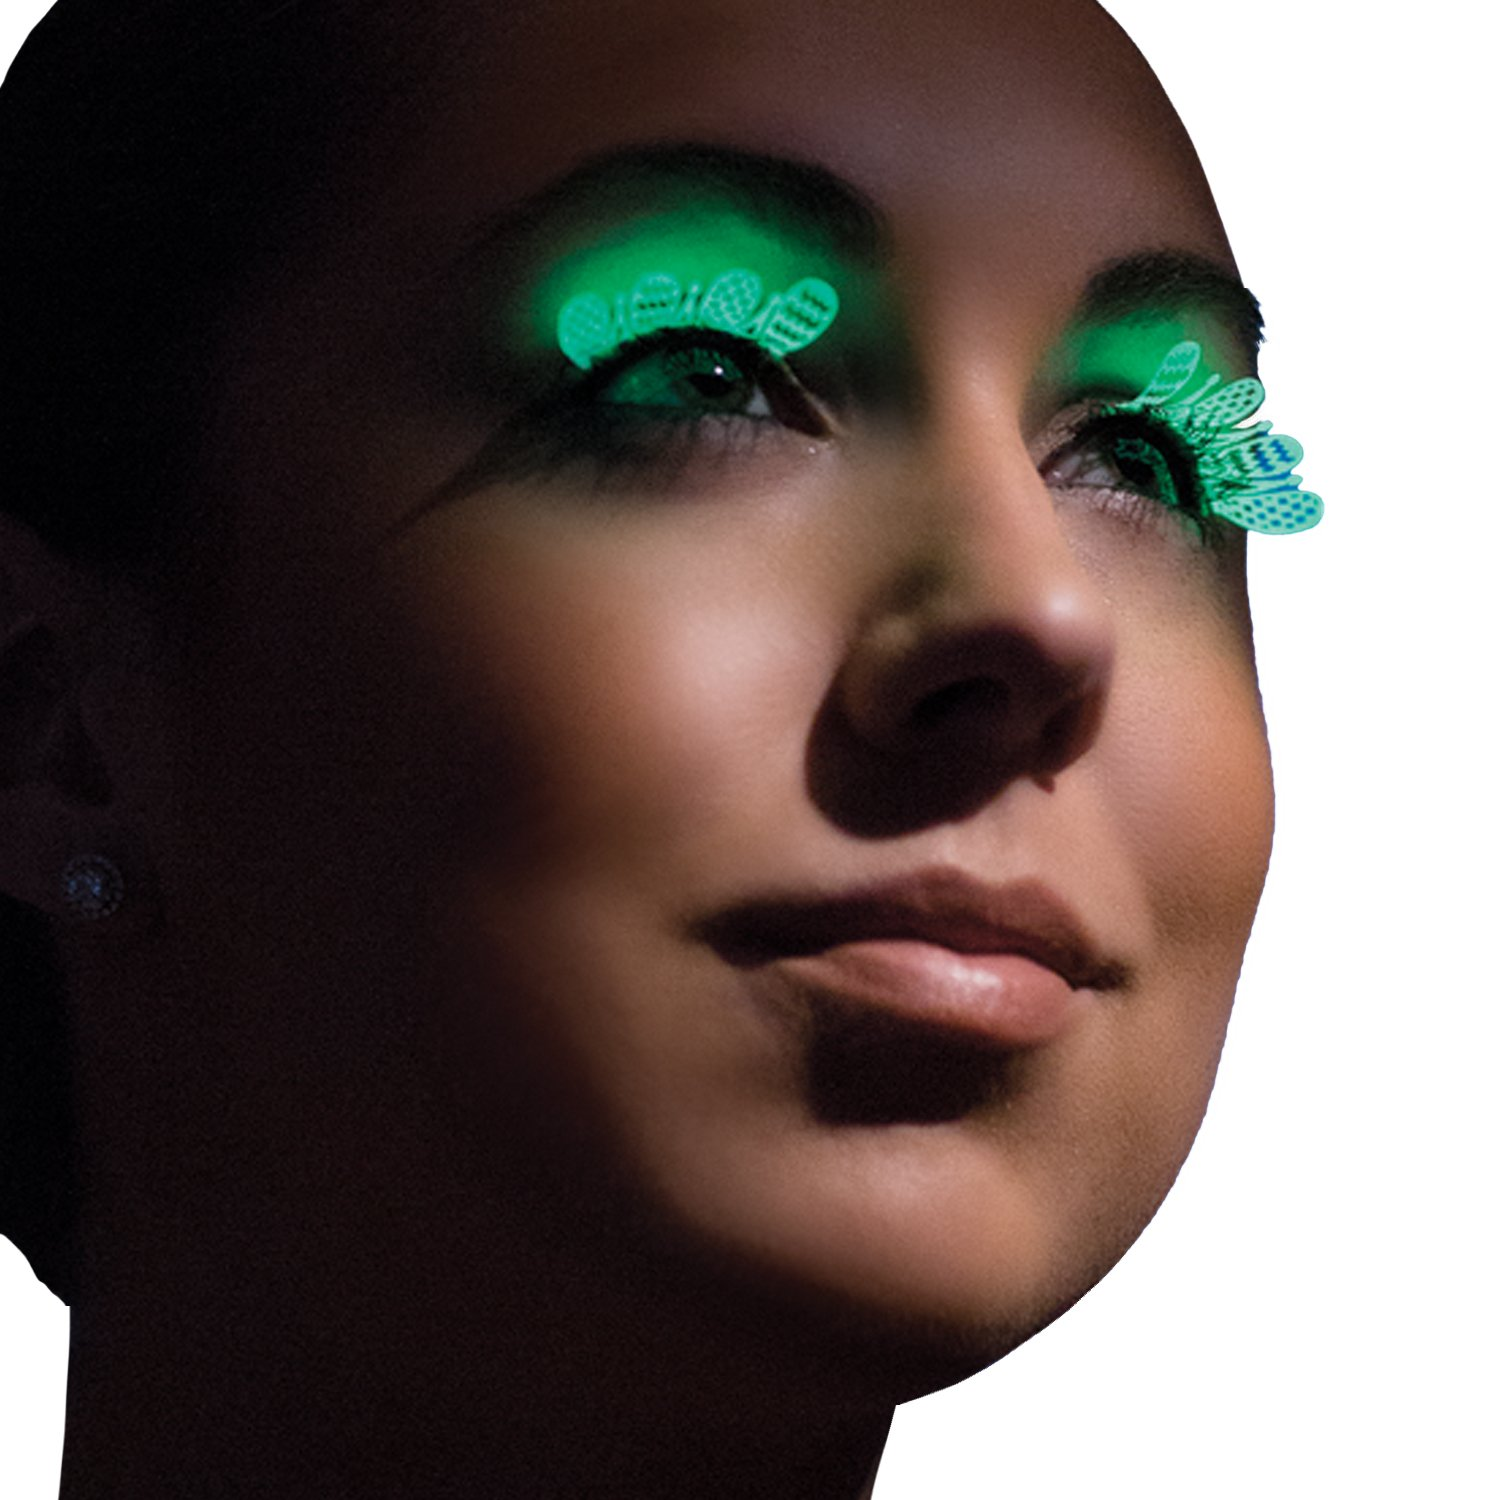 Amazon.com: Party King Womens Glow In The Dark Whimsy Eyelashes, White, One Size: Clothing